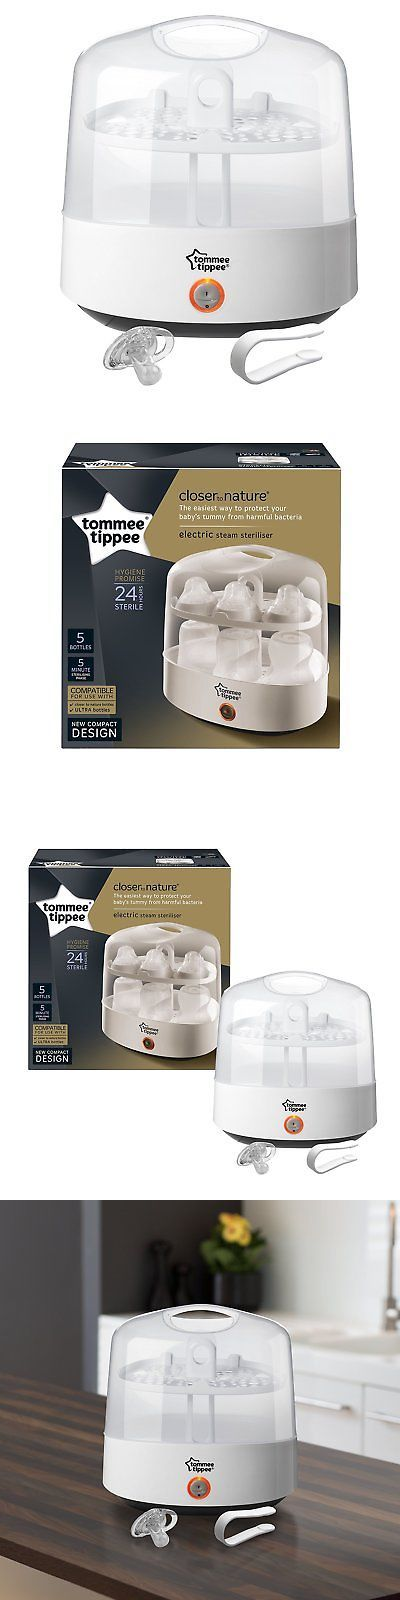 Bottle Sterilizers 106789: Tommee Tippee Baby Bottle Electric Steam Steriliser Chemical And Bpa Free, White -> BUY IT NOW ONLY: $39.38 on eBay!